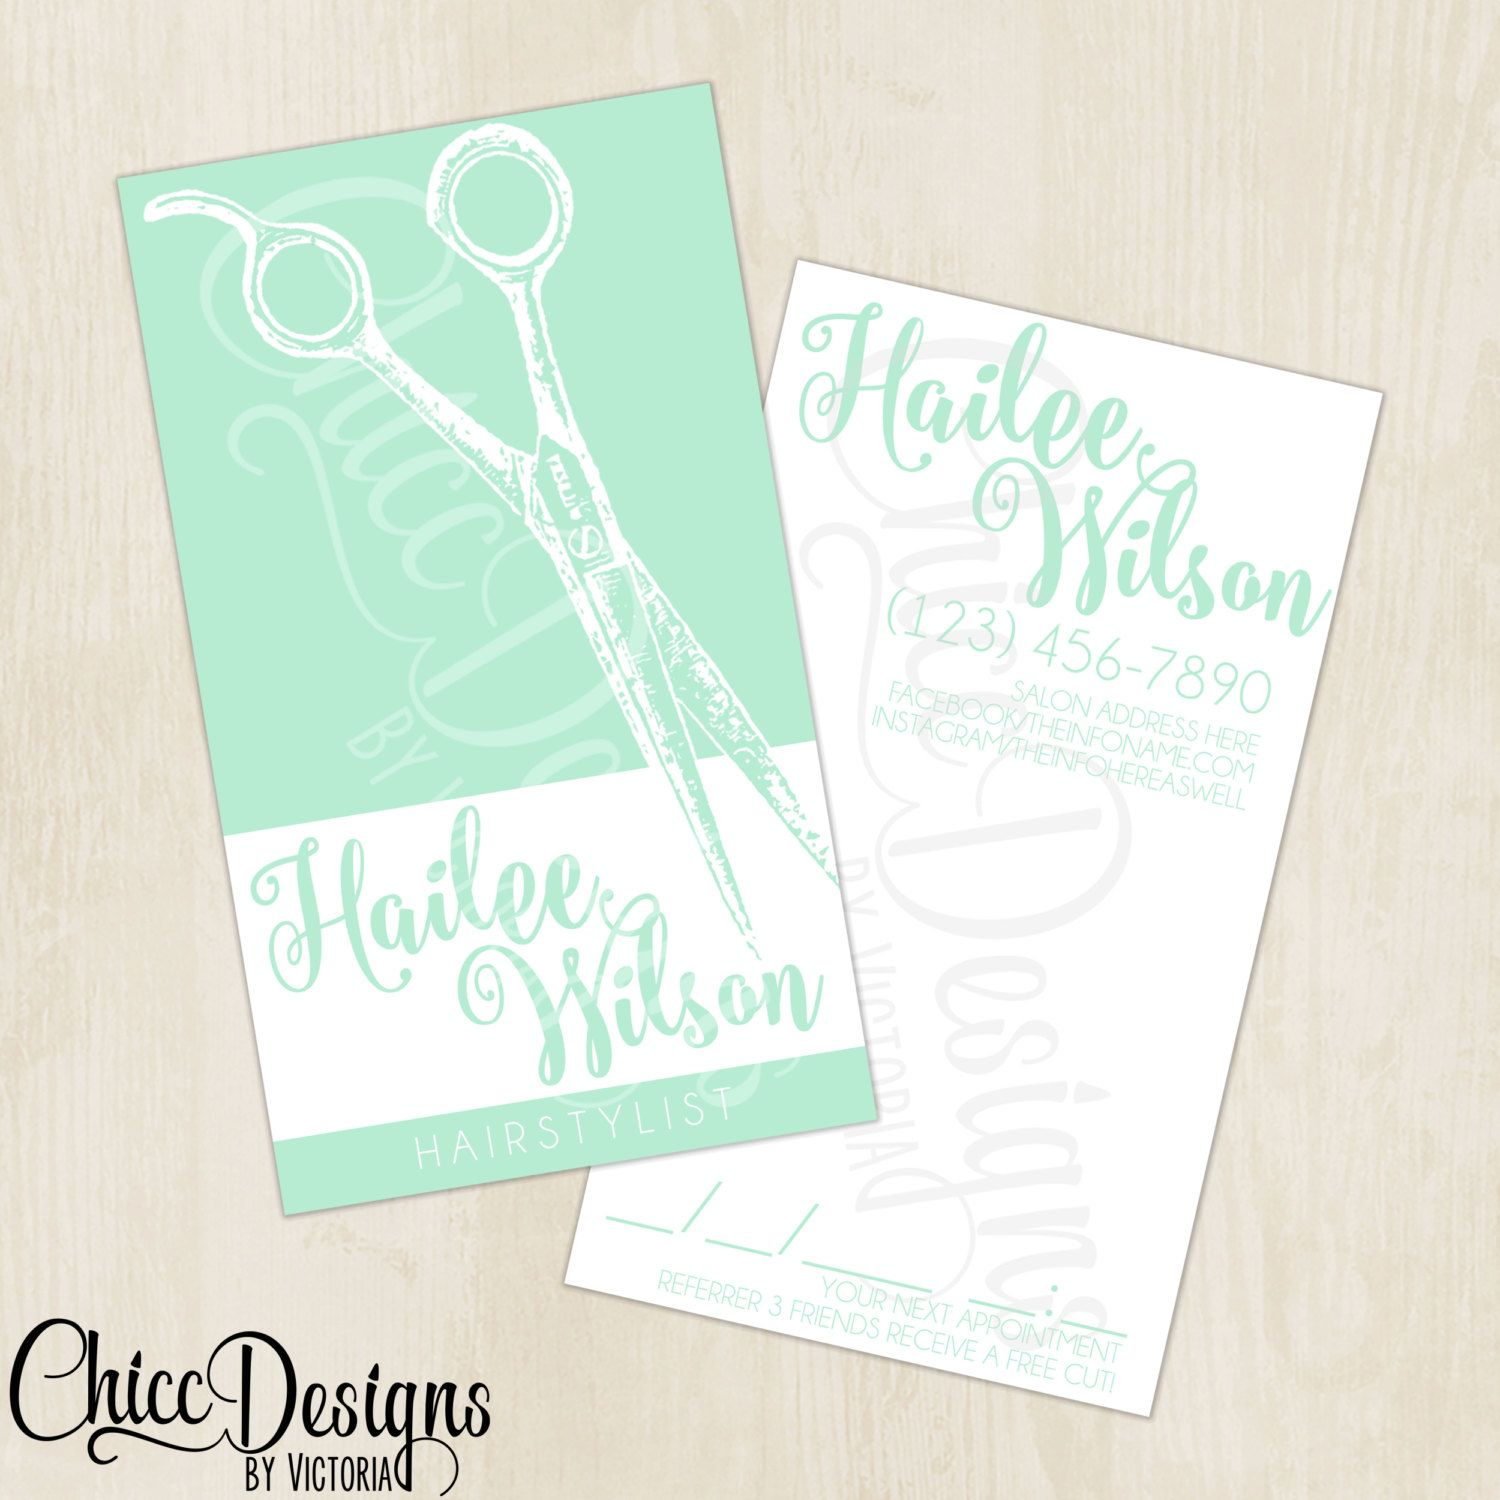 Hairstylist Business Cards - Front & Back - Mint - Shears - Digital ...